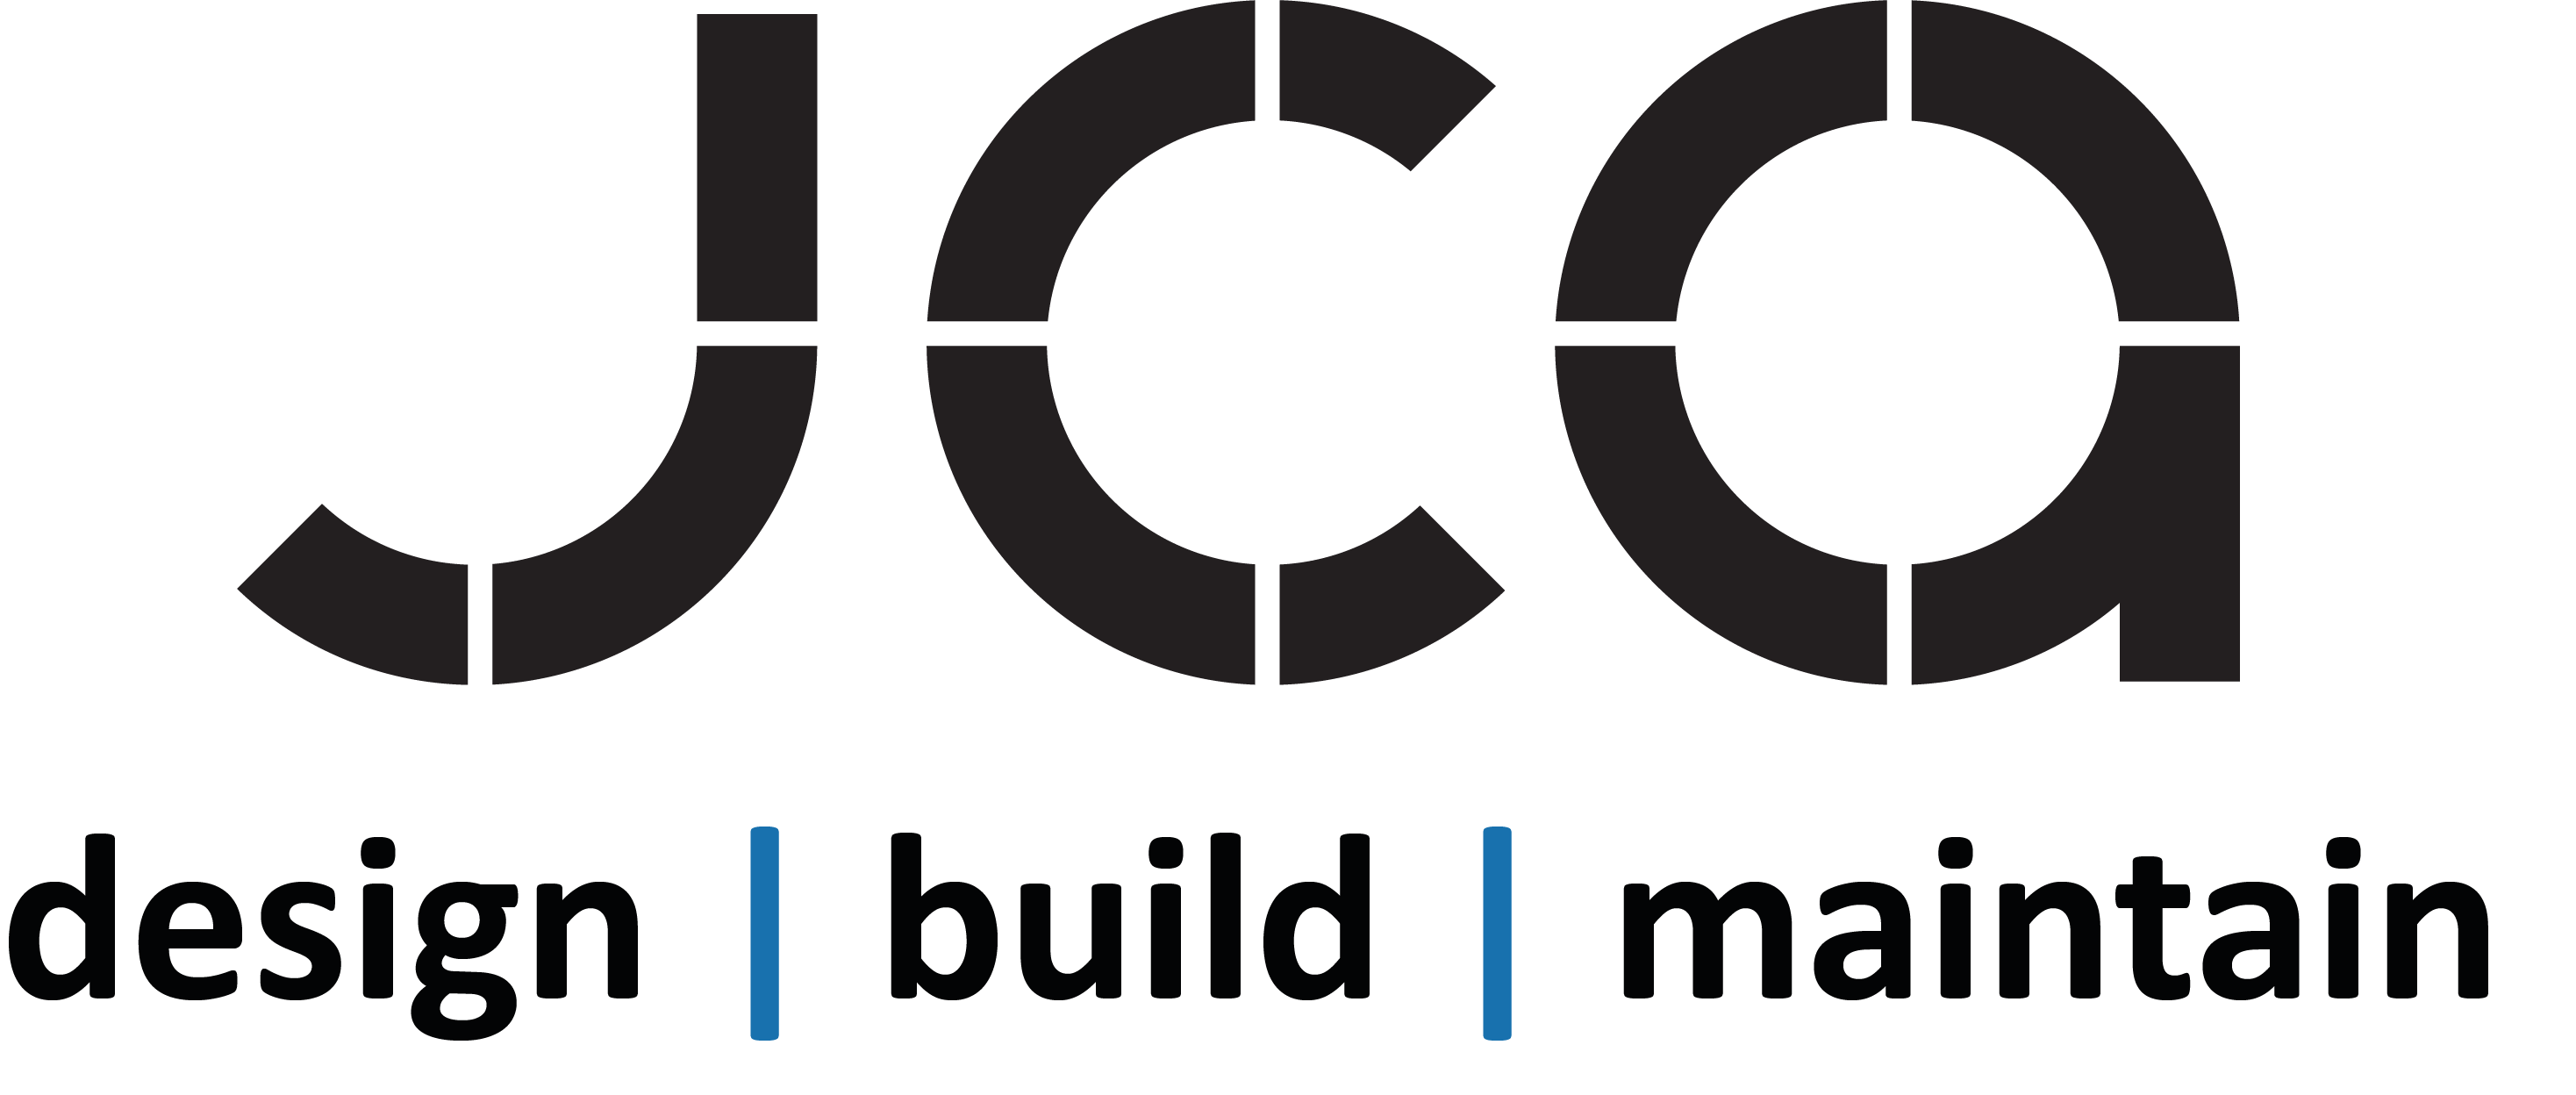 JCA Centred Black logo design build maintain and services - Transparent background PNG